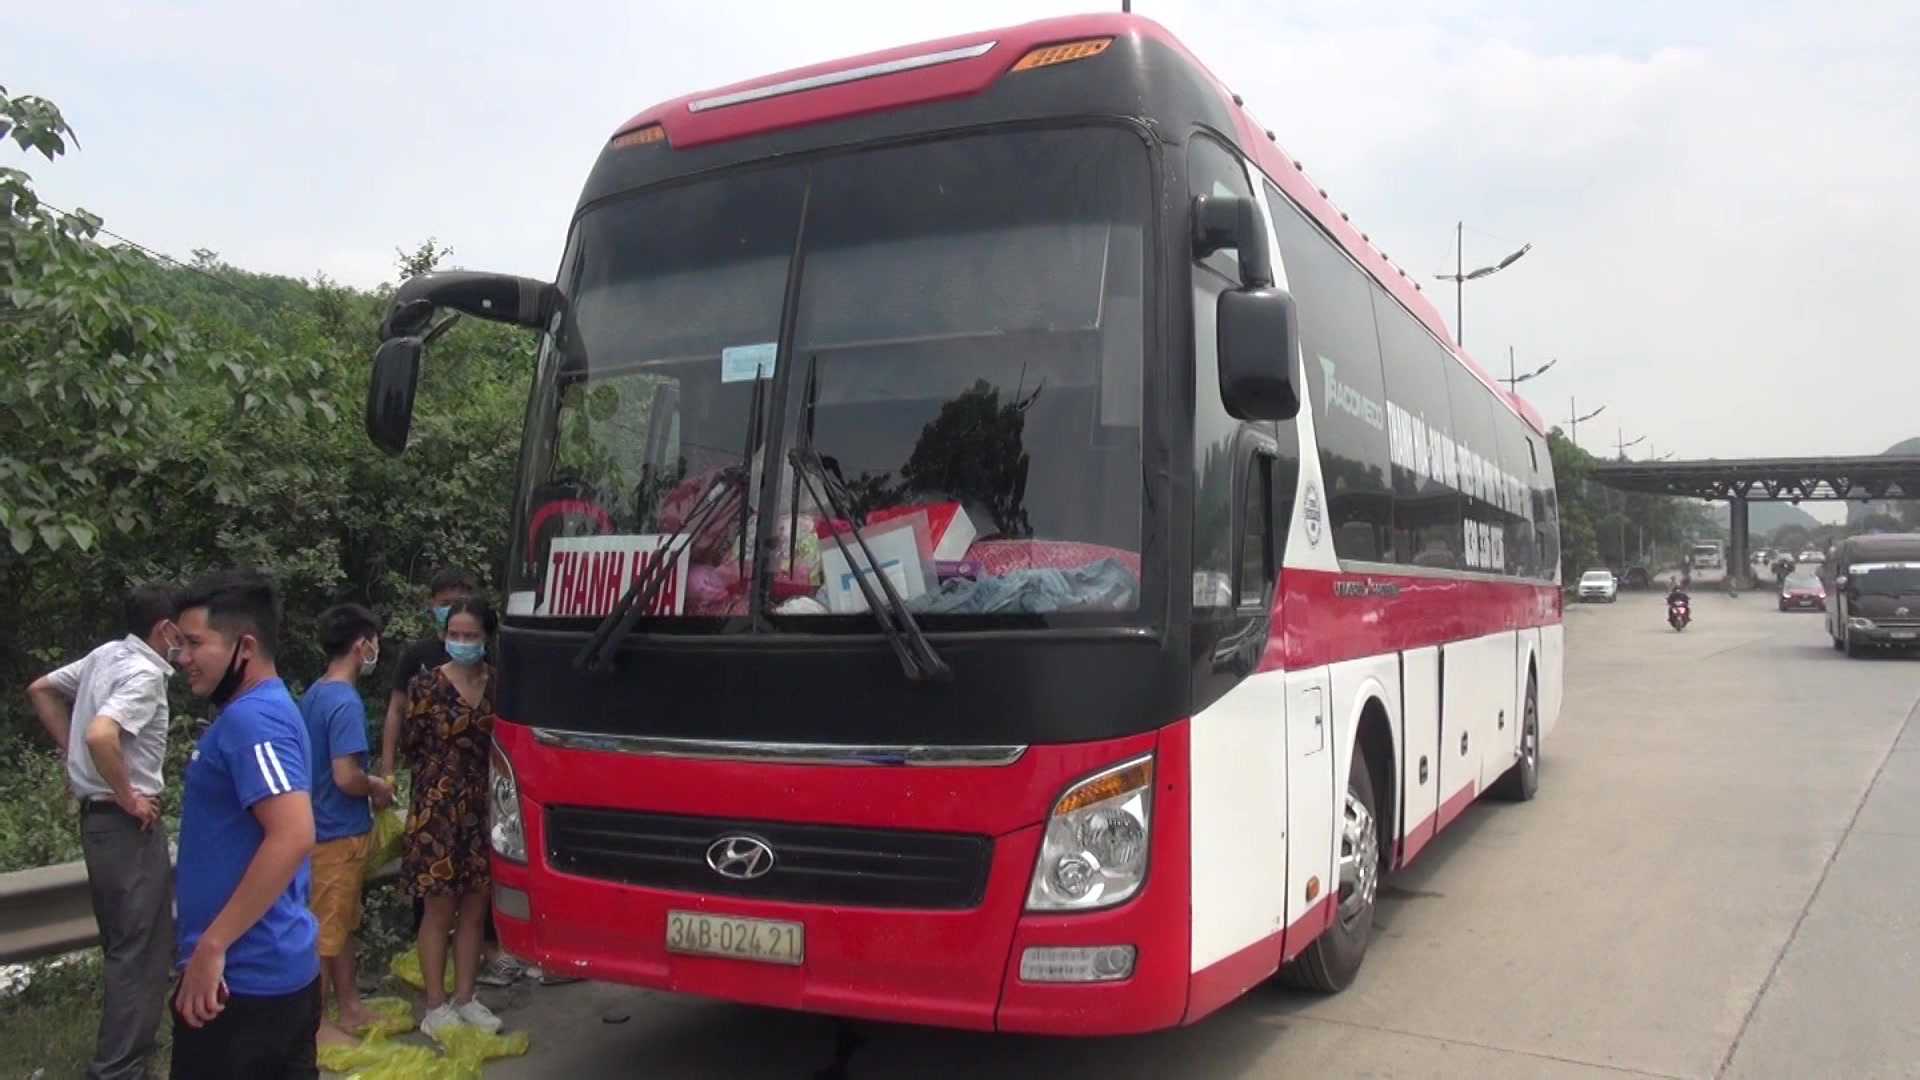 Long-haul bus operator fined for carrying passengers nearly double capacity in Vietnam